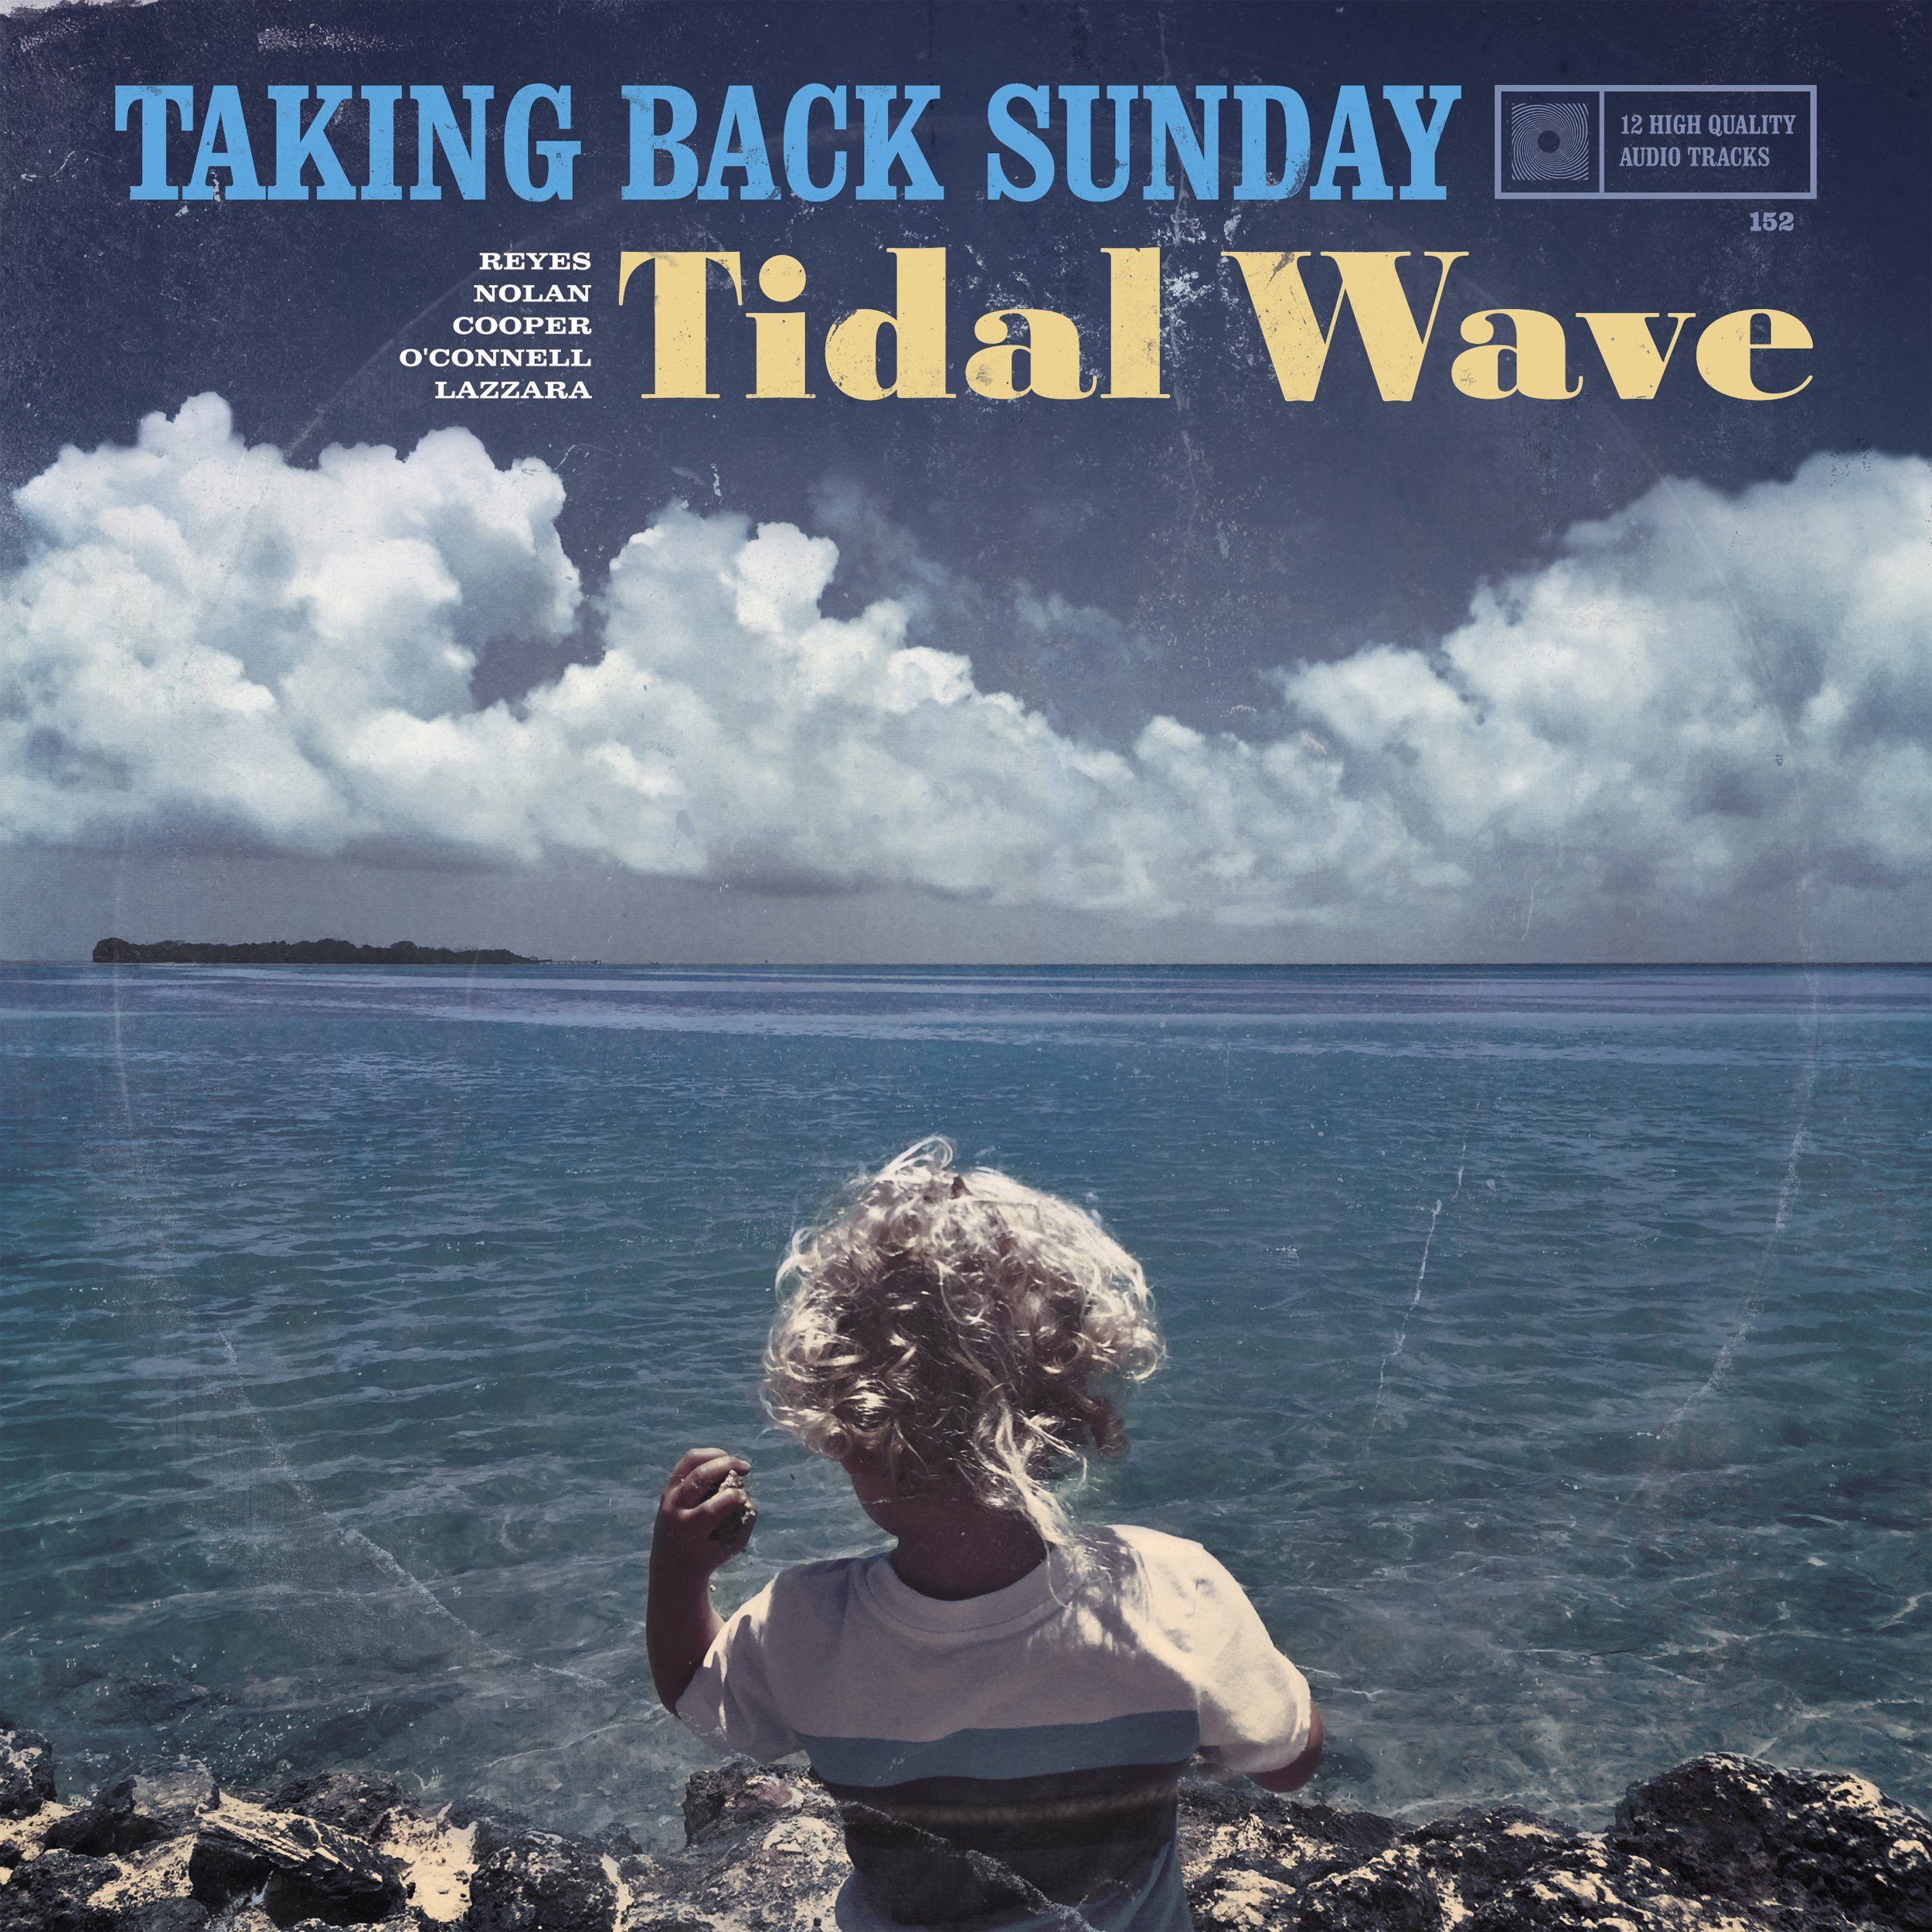 taking-back-sunday-tidal-wave-artwork